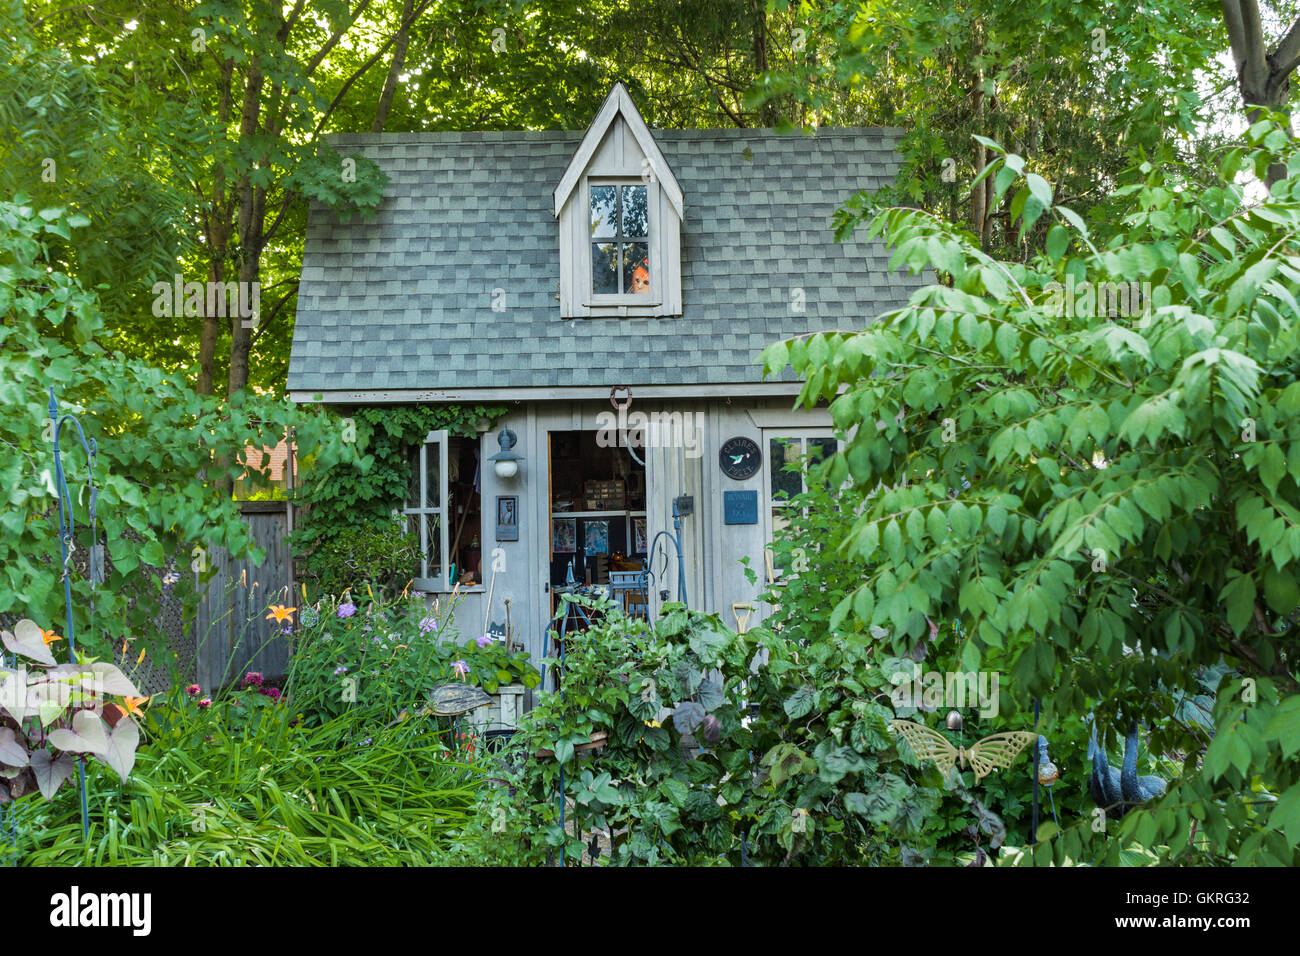 large-garden-shed-with-dolls-face-in-the-window-GKRG32.jpg